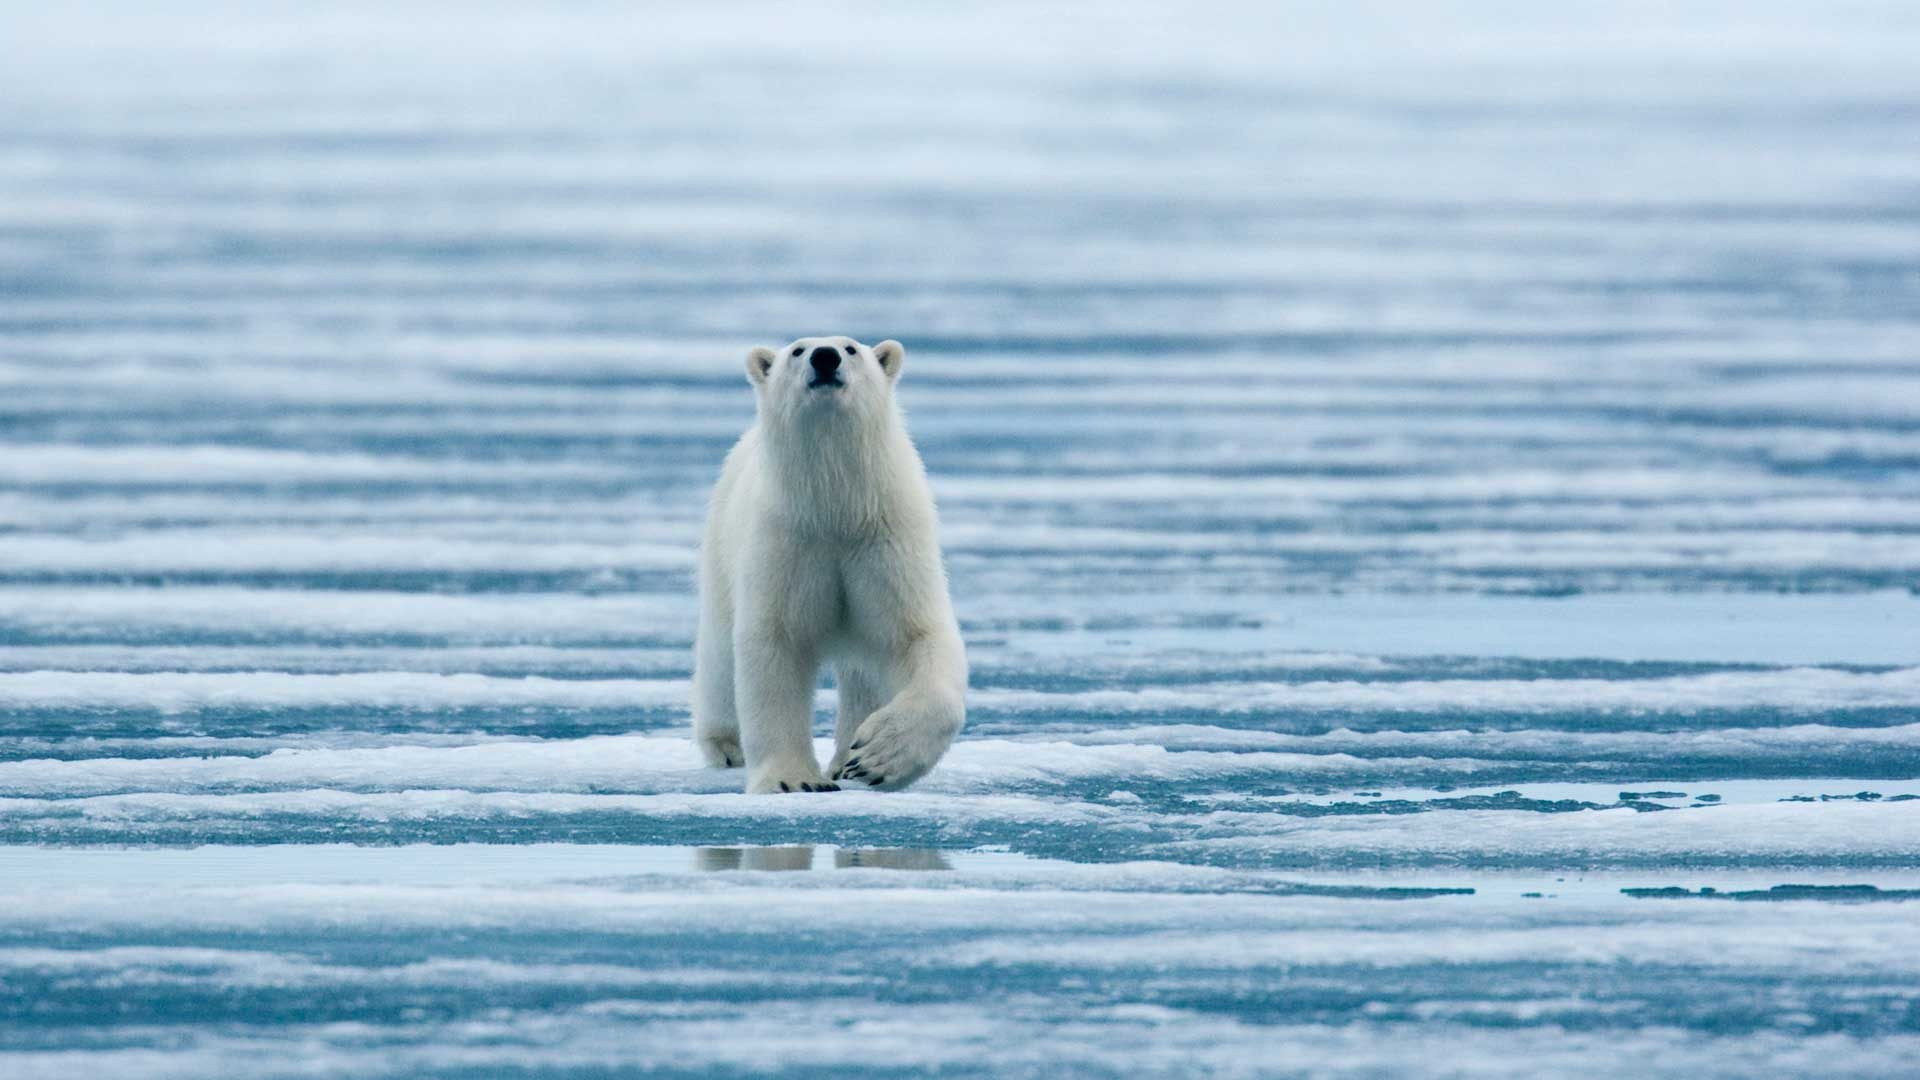 Polar bear walking on fjord ice, North Pole expedition with GeoEx